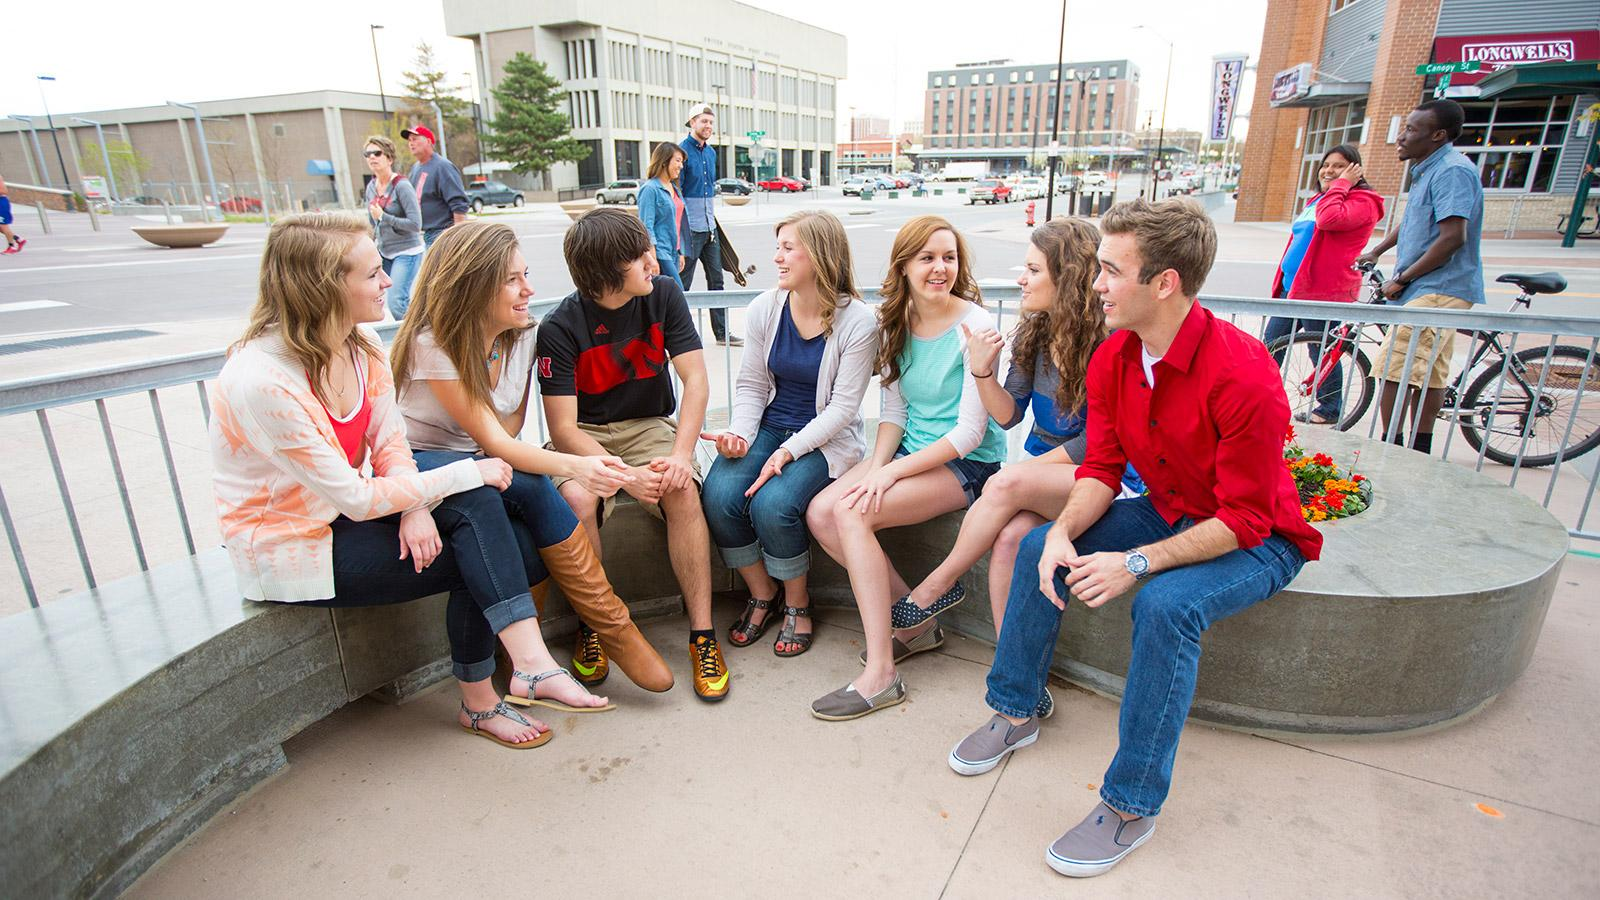 Students conversing in downtown Lincoln